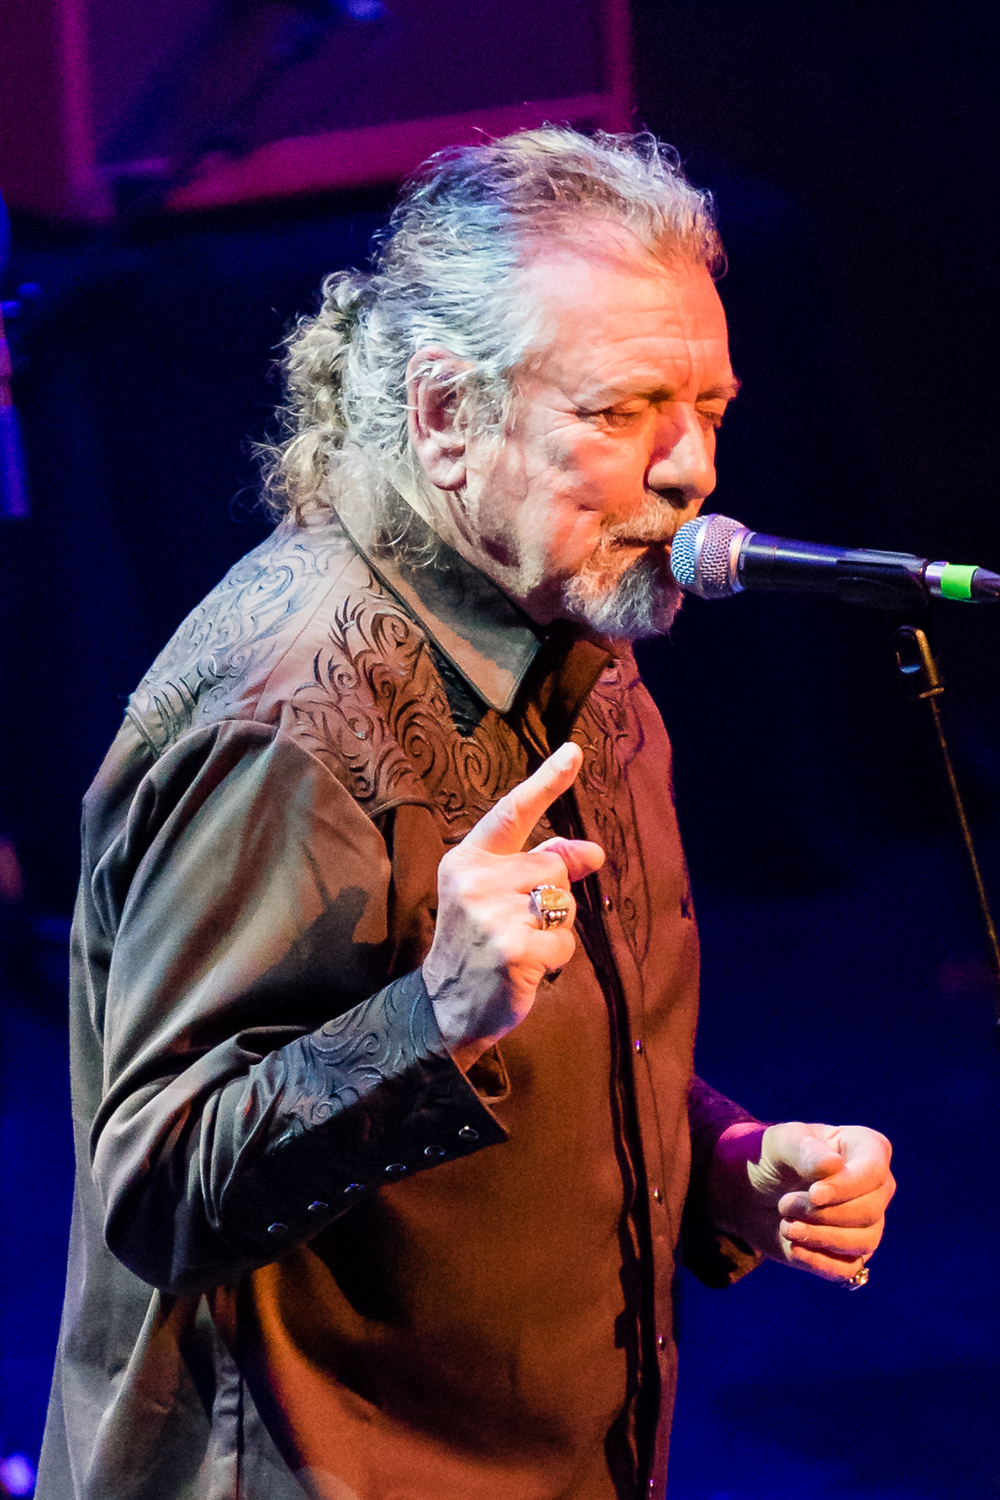 Robert Plant at the final concert